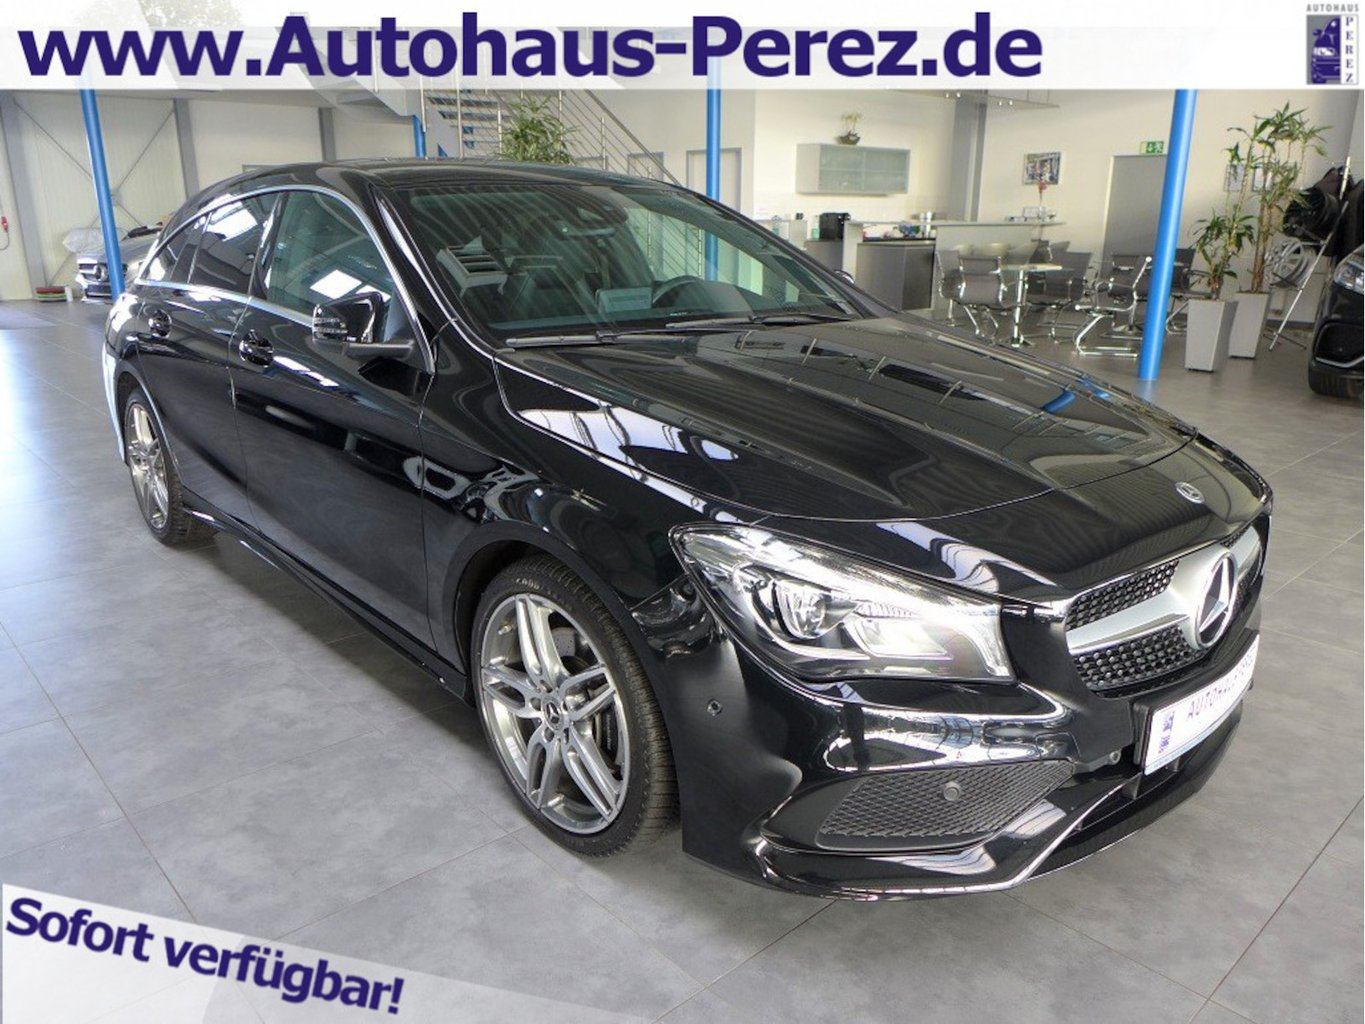 Mercedes-Benz CLA 250 Shooting Brake 7-G AMG NAVI-LED-SHZ-PTS, Jahr 2018, Benzin